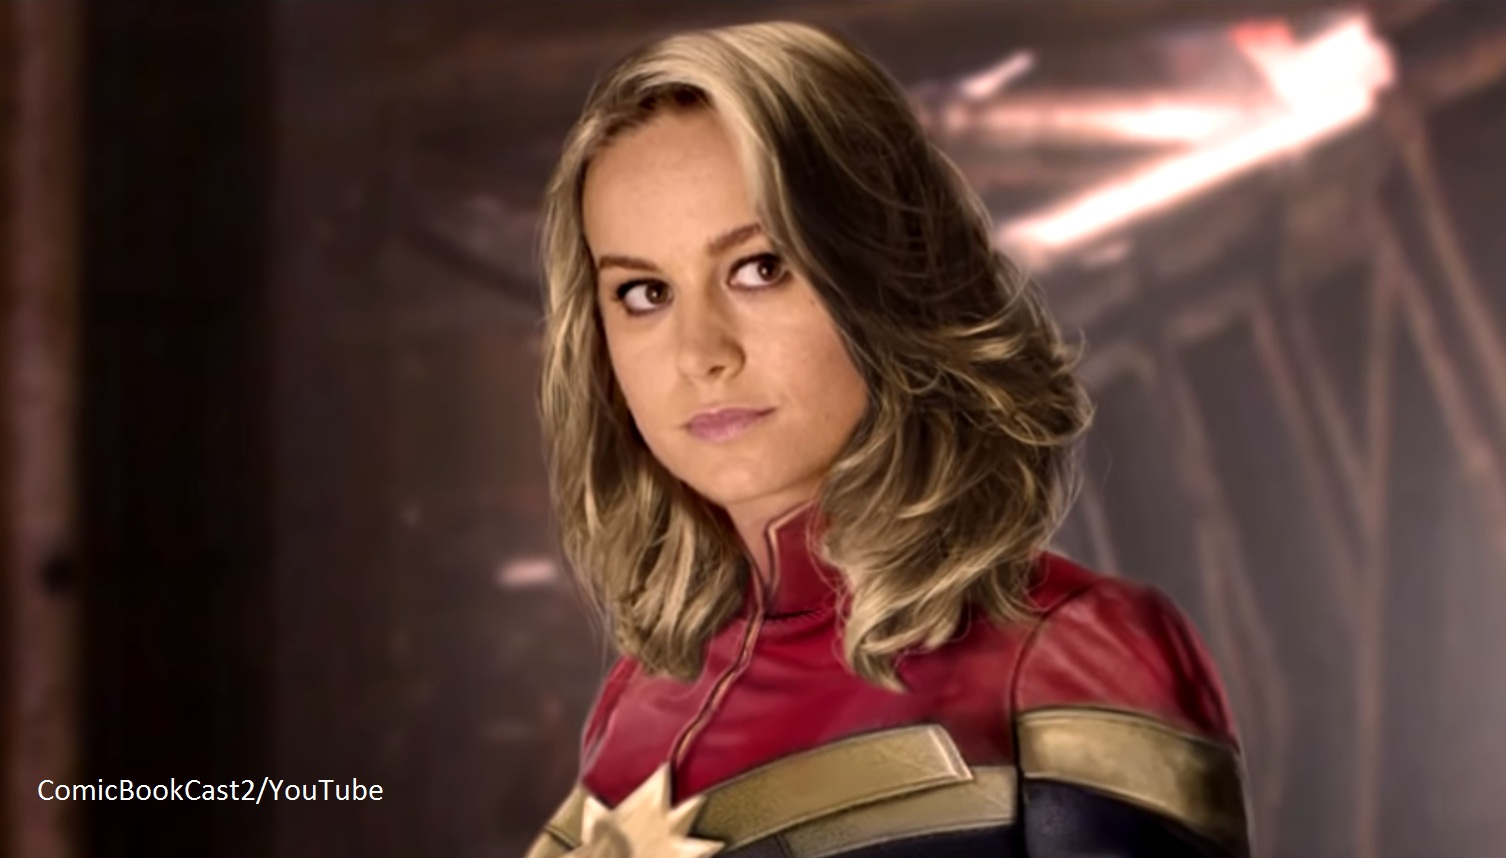 'Captain Marvel' featurette footage, possible trailer, shown at CineEurope